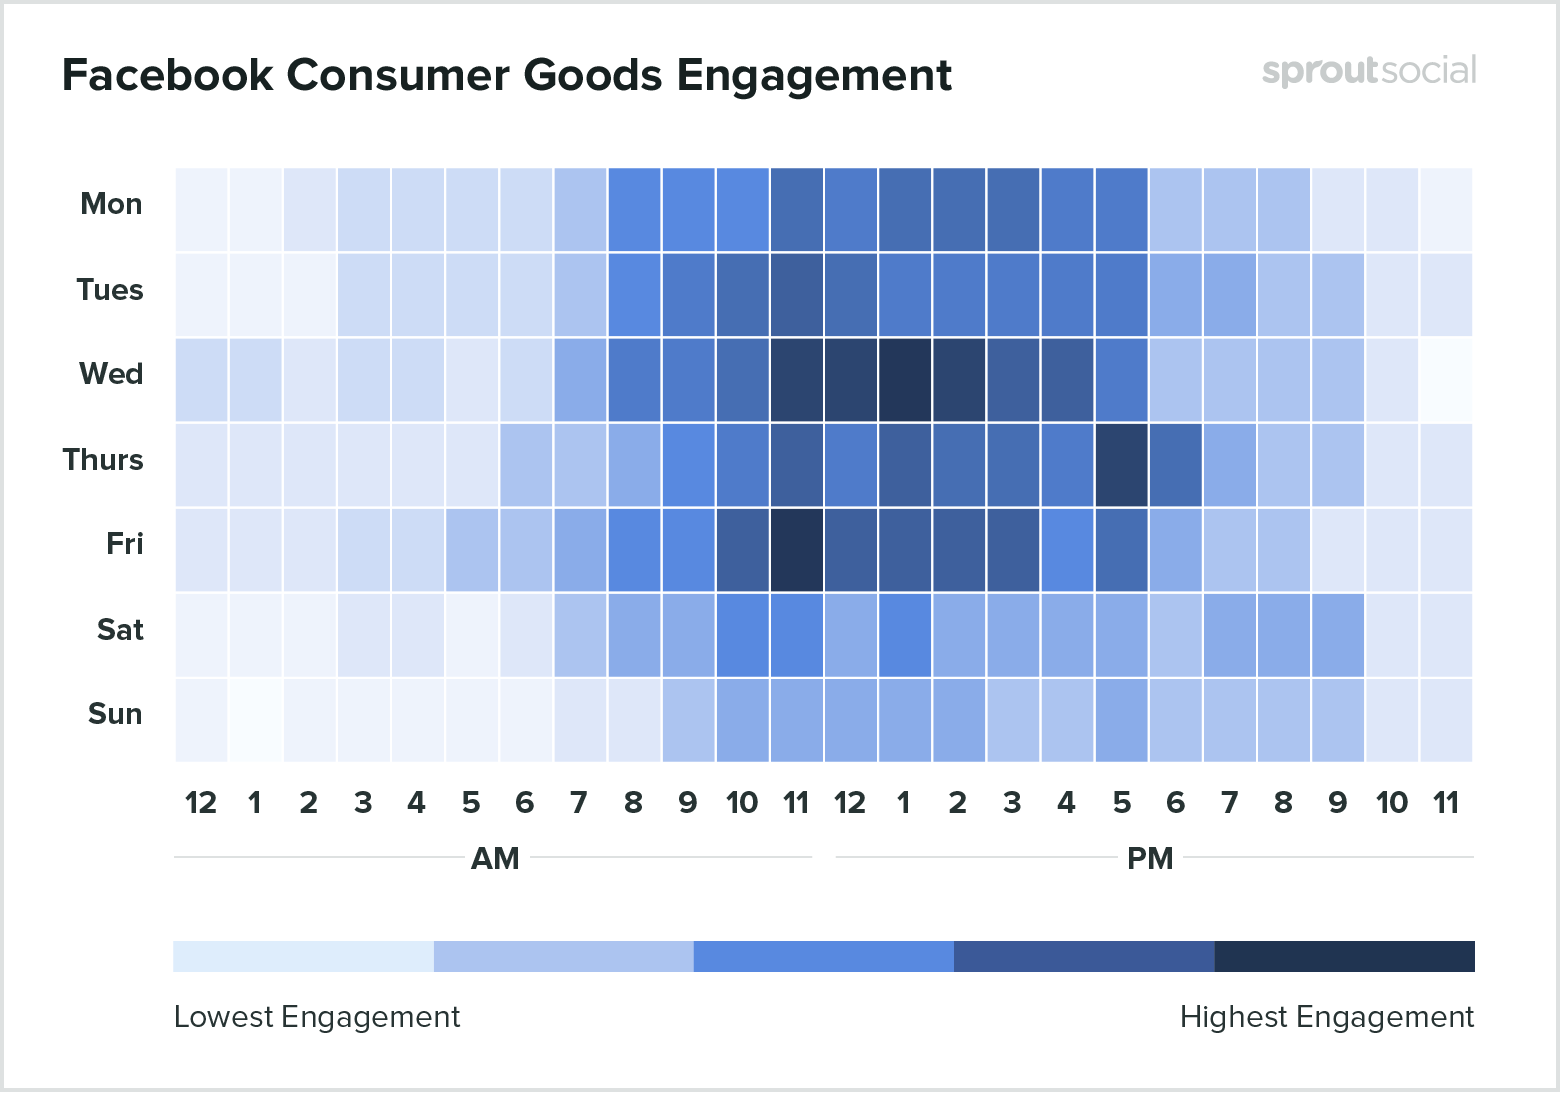 Best times to post on facebook for consumer goods 2020